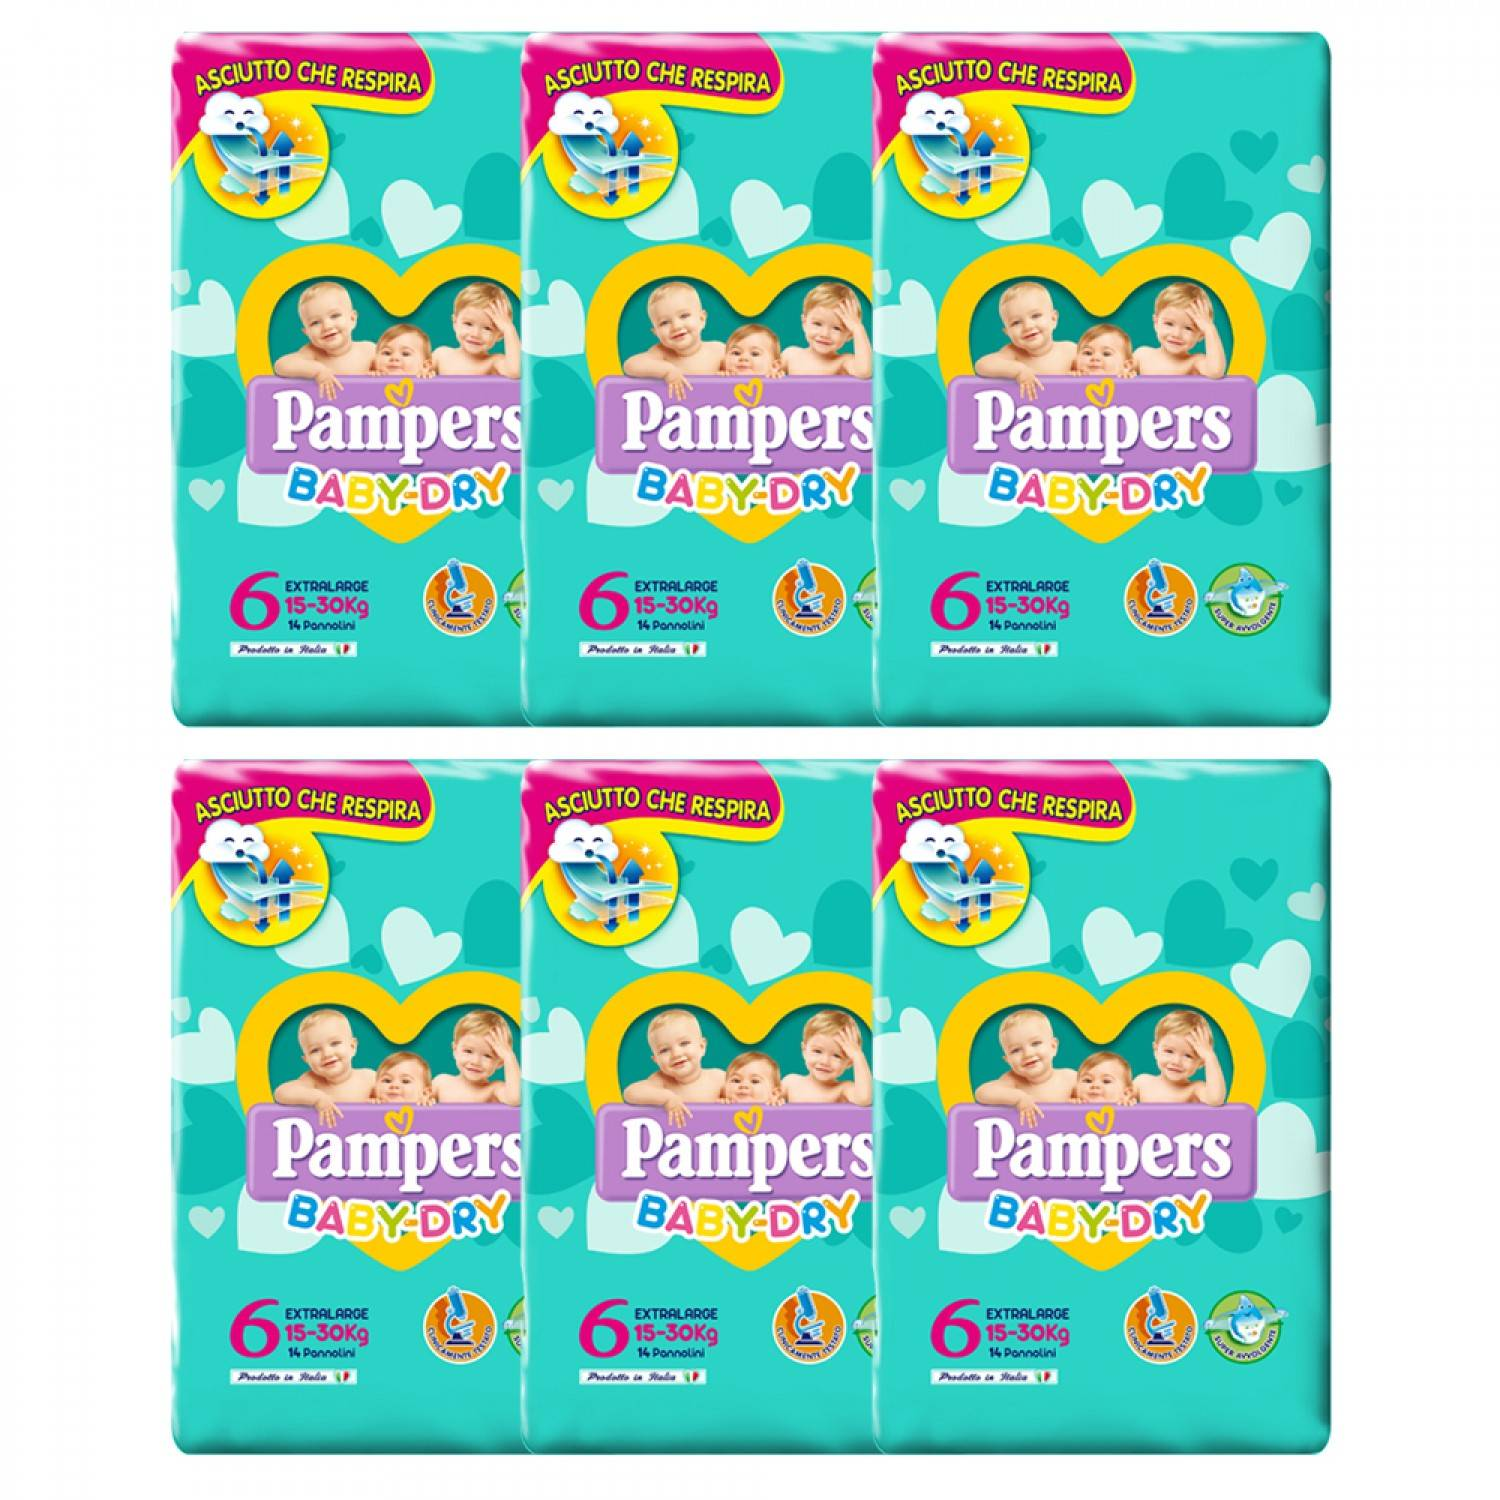 Pampers Baby Dry ExtraLarge Diaper Kit 15-30 Kg Taille 6-6 Paquets de 14pcs